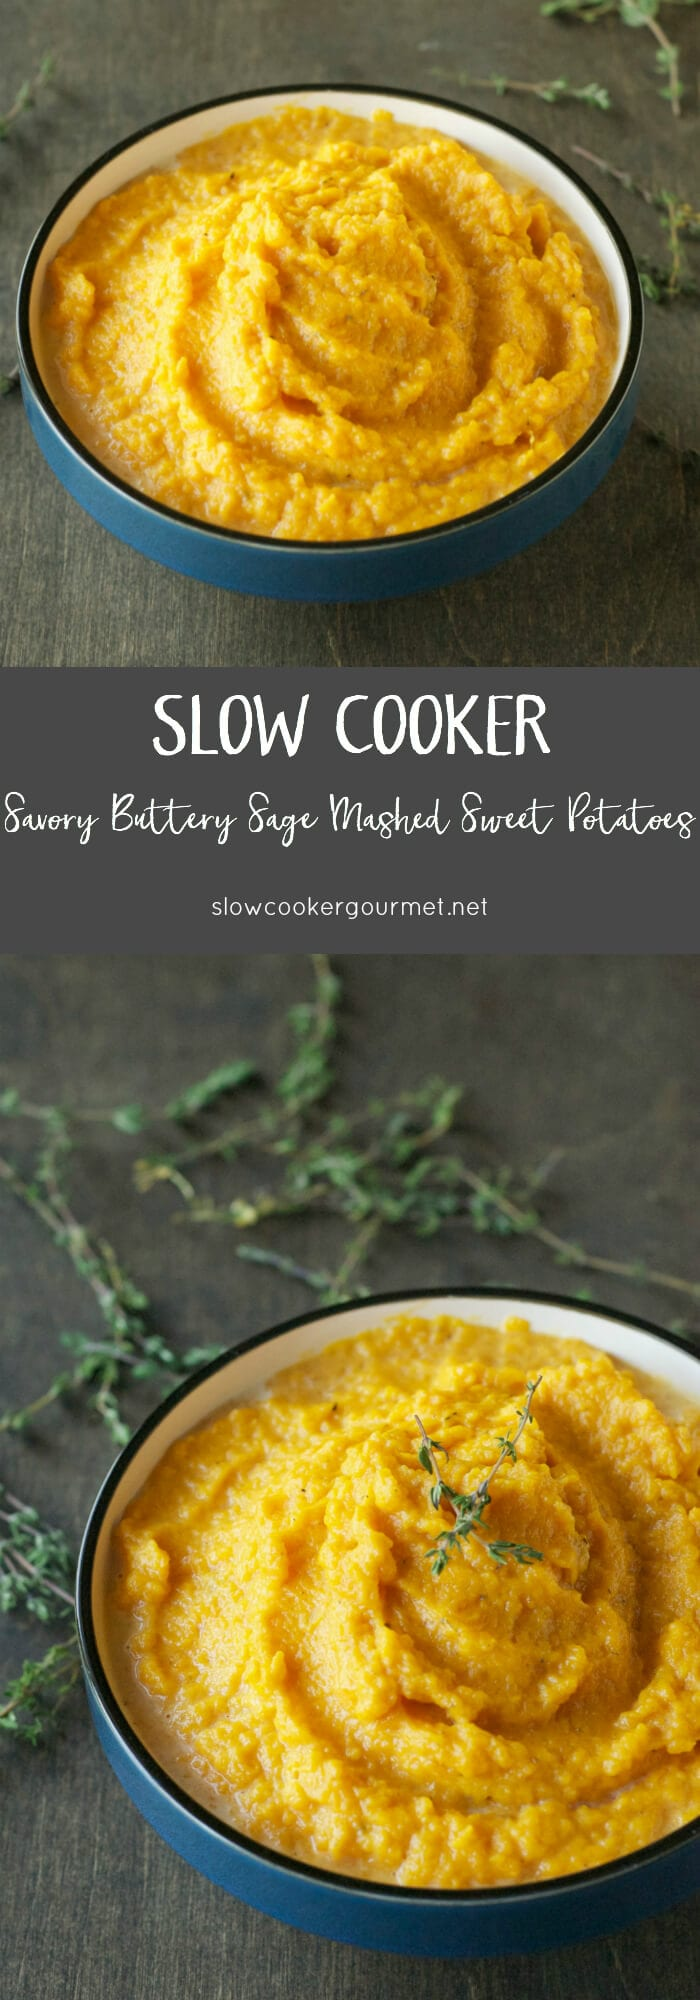 scg-savory-buttery-sage-mashed-sweet-potatoes-longpins